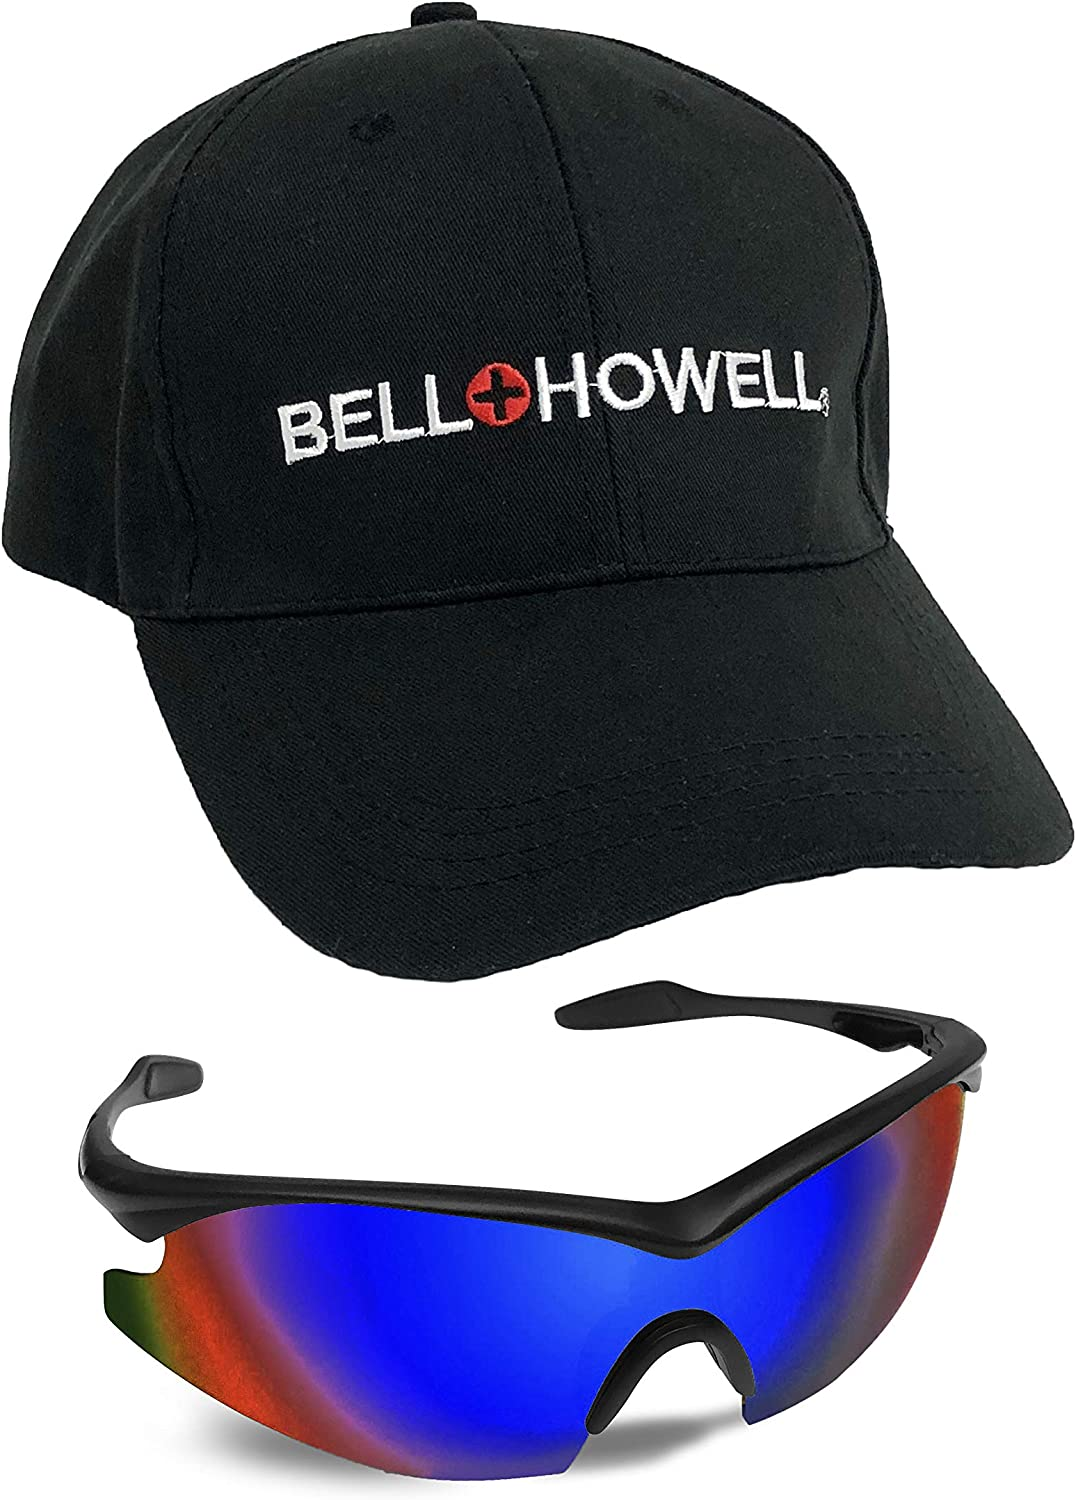 Bell + Howell Sports blueE TAC GLASSES with Cap, Unisex, Polarized As Seen On TV